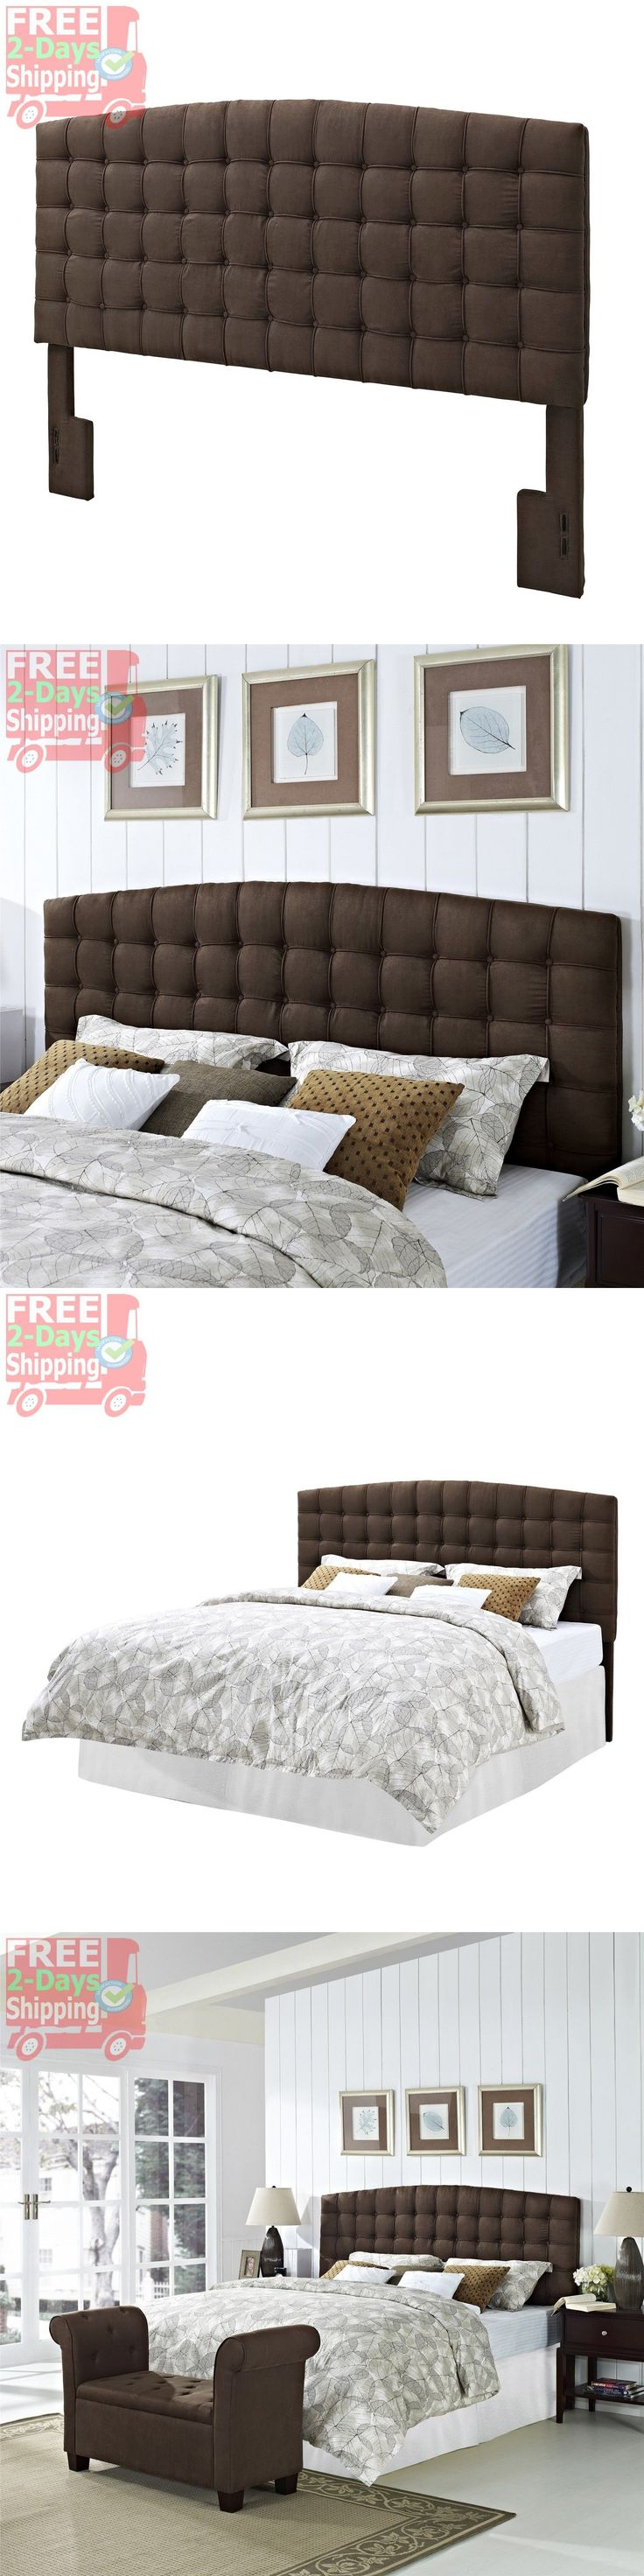 Headboards and Footboards 109064: Upholstered Headboard King Size Button Tufted Bedroom Furniture Microfiber Brown -> BUY IT NOW ONLY: $235.42 on eBay!